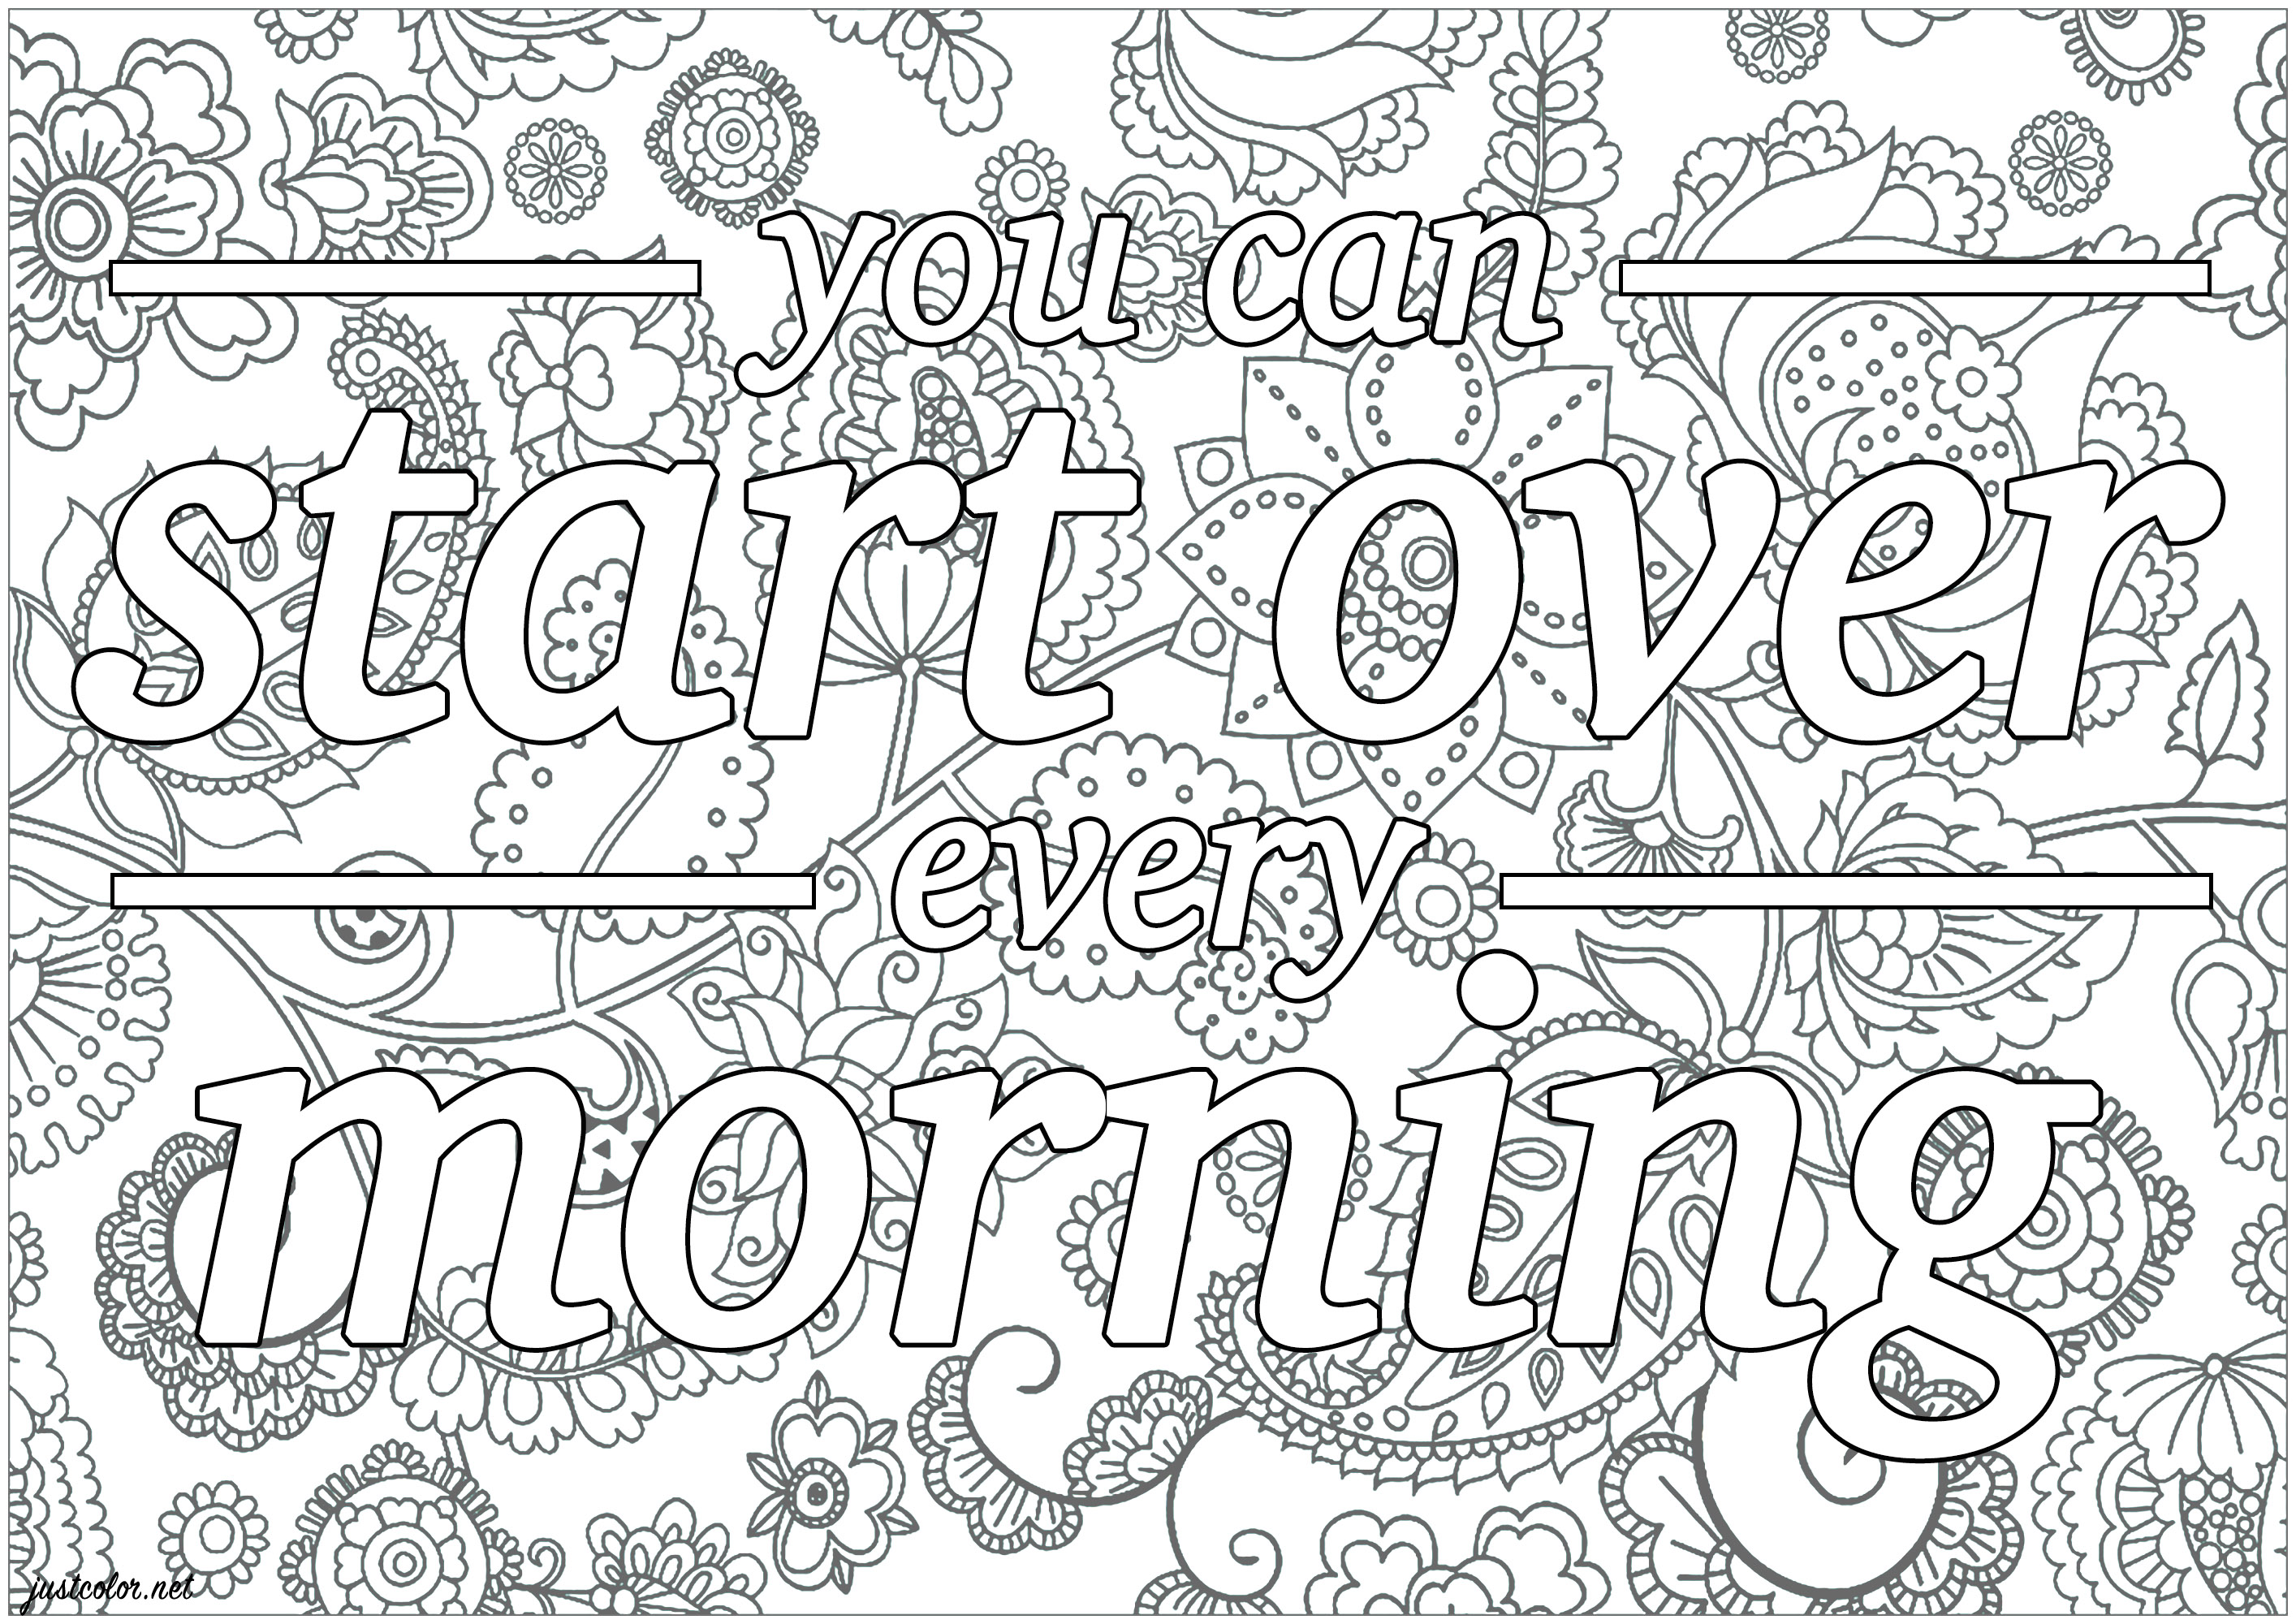 You can start over every morning - Tyler Joseph